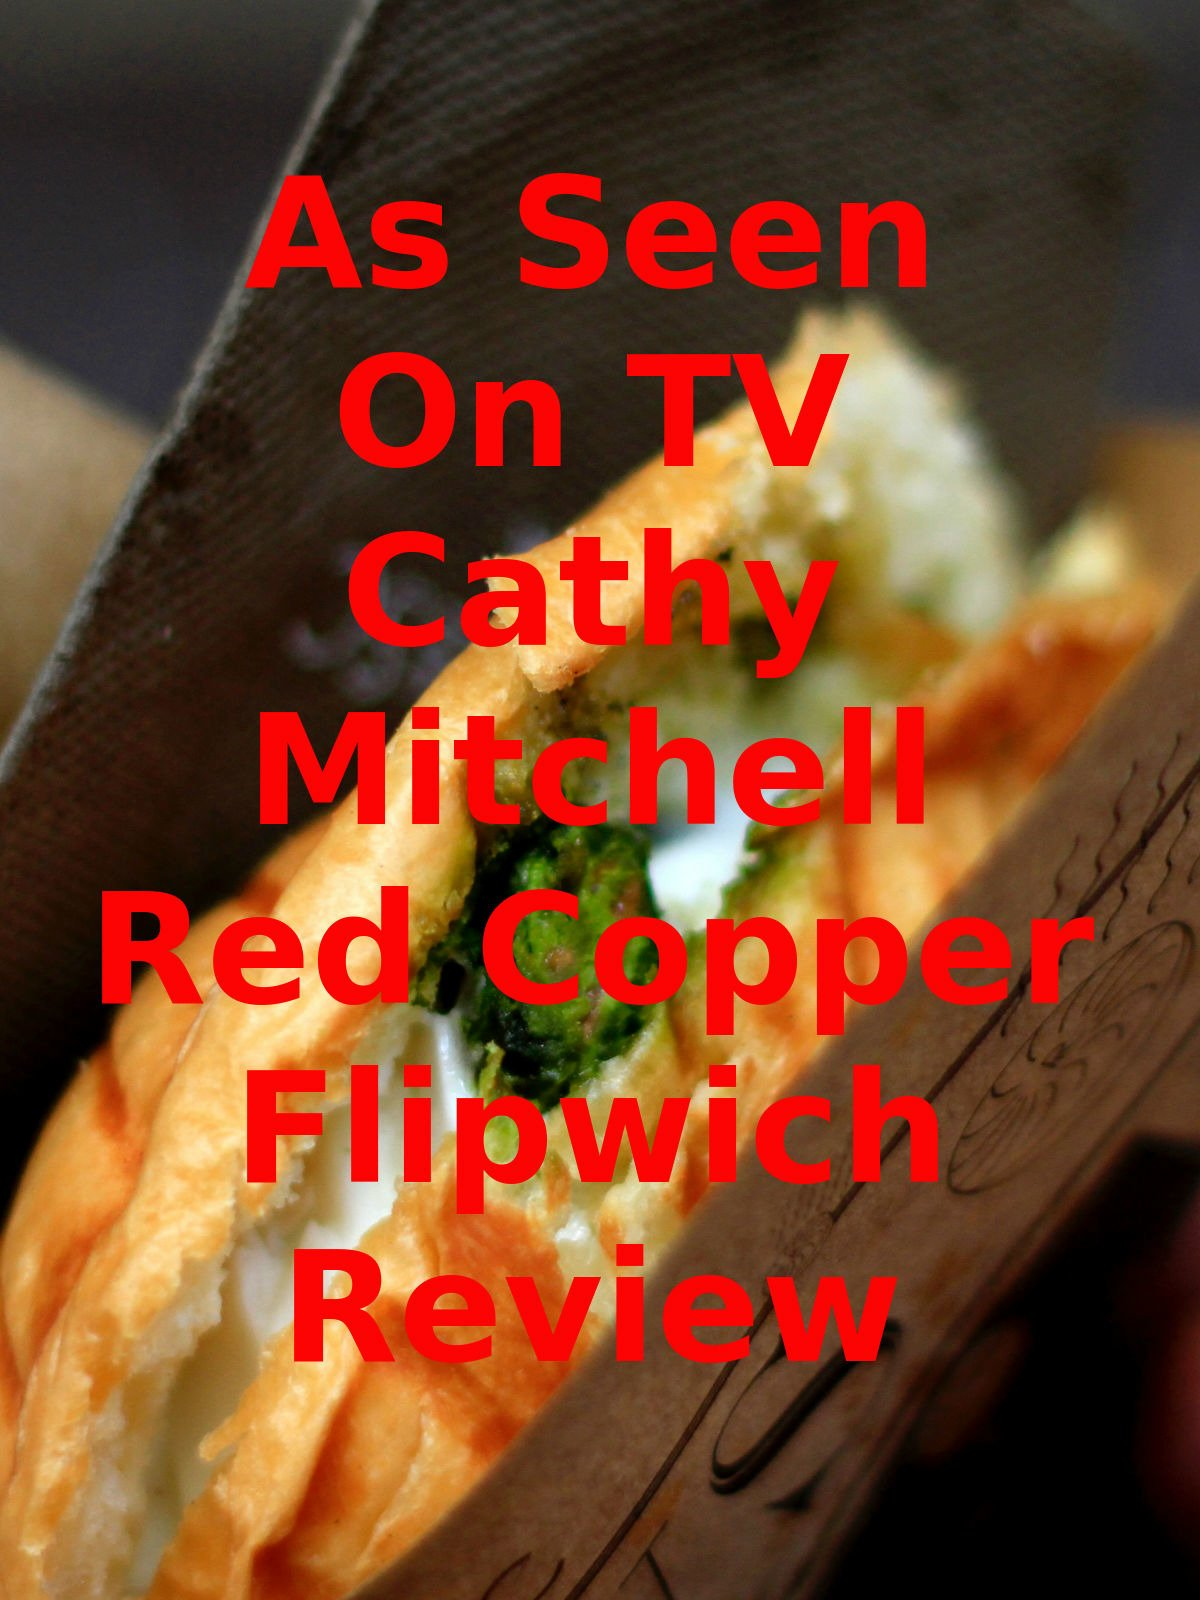 Review: As Seen On TV Cathy Mitchell Red Copper Flipwich Review